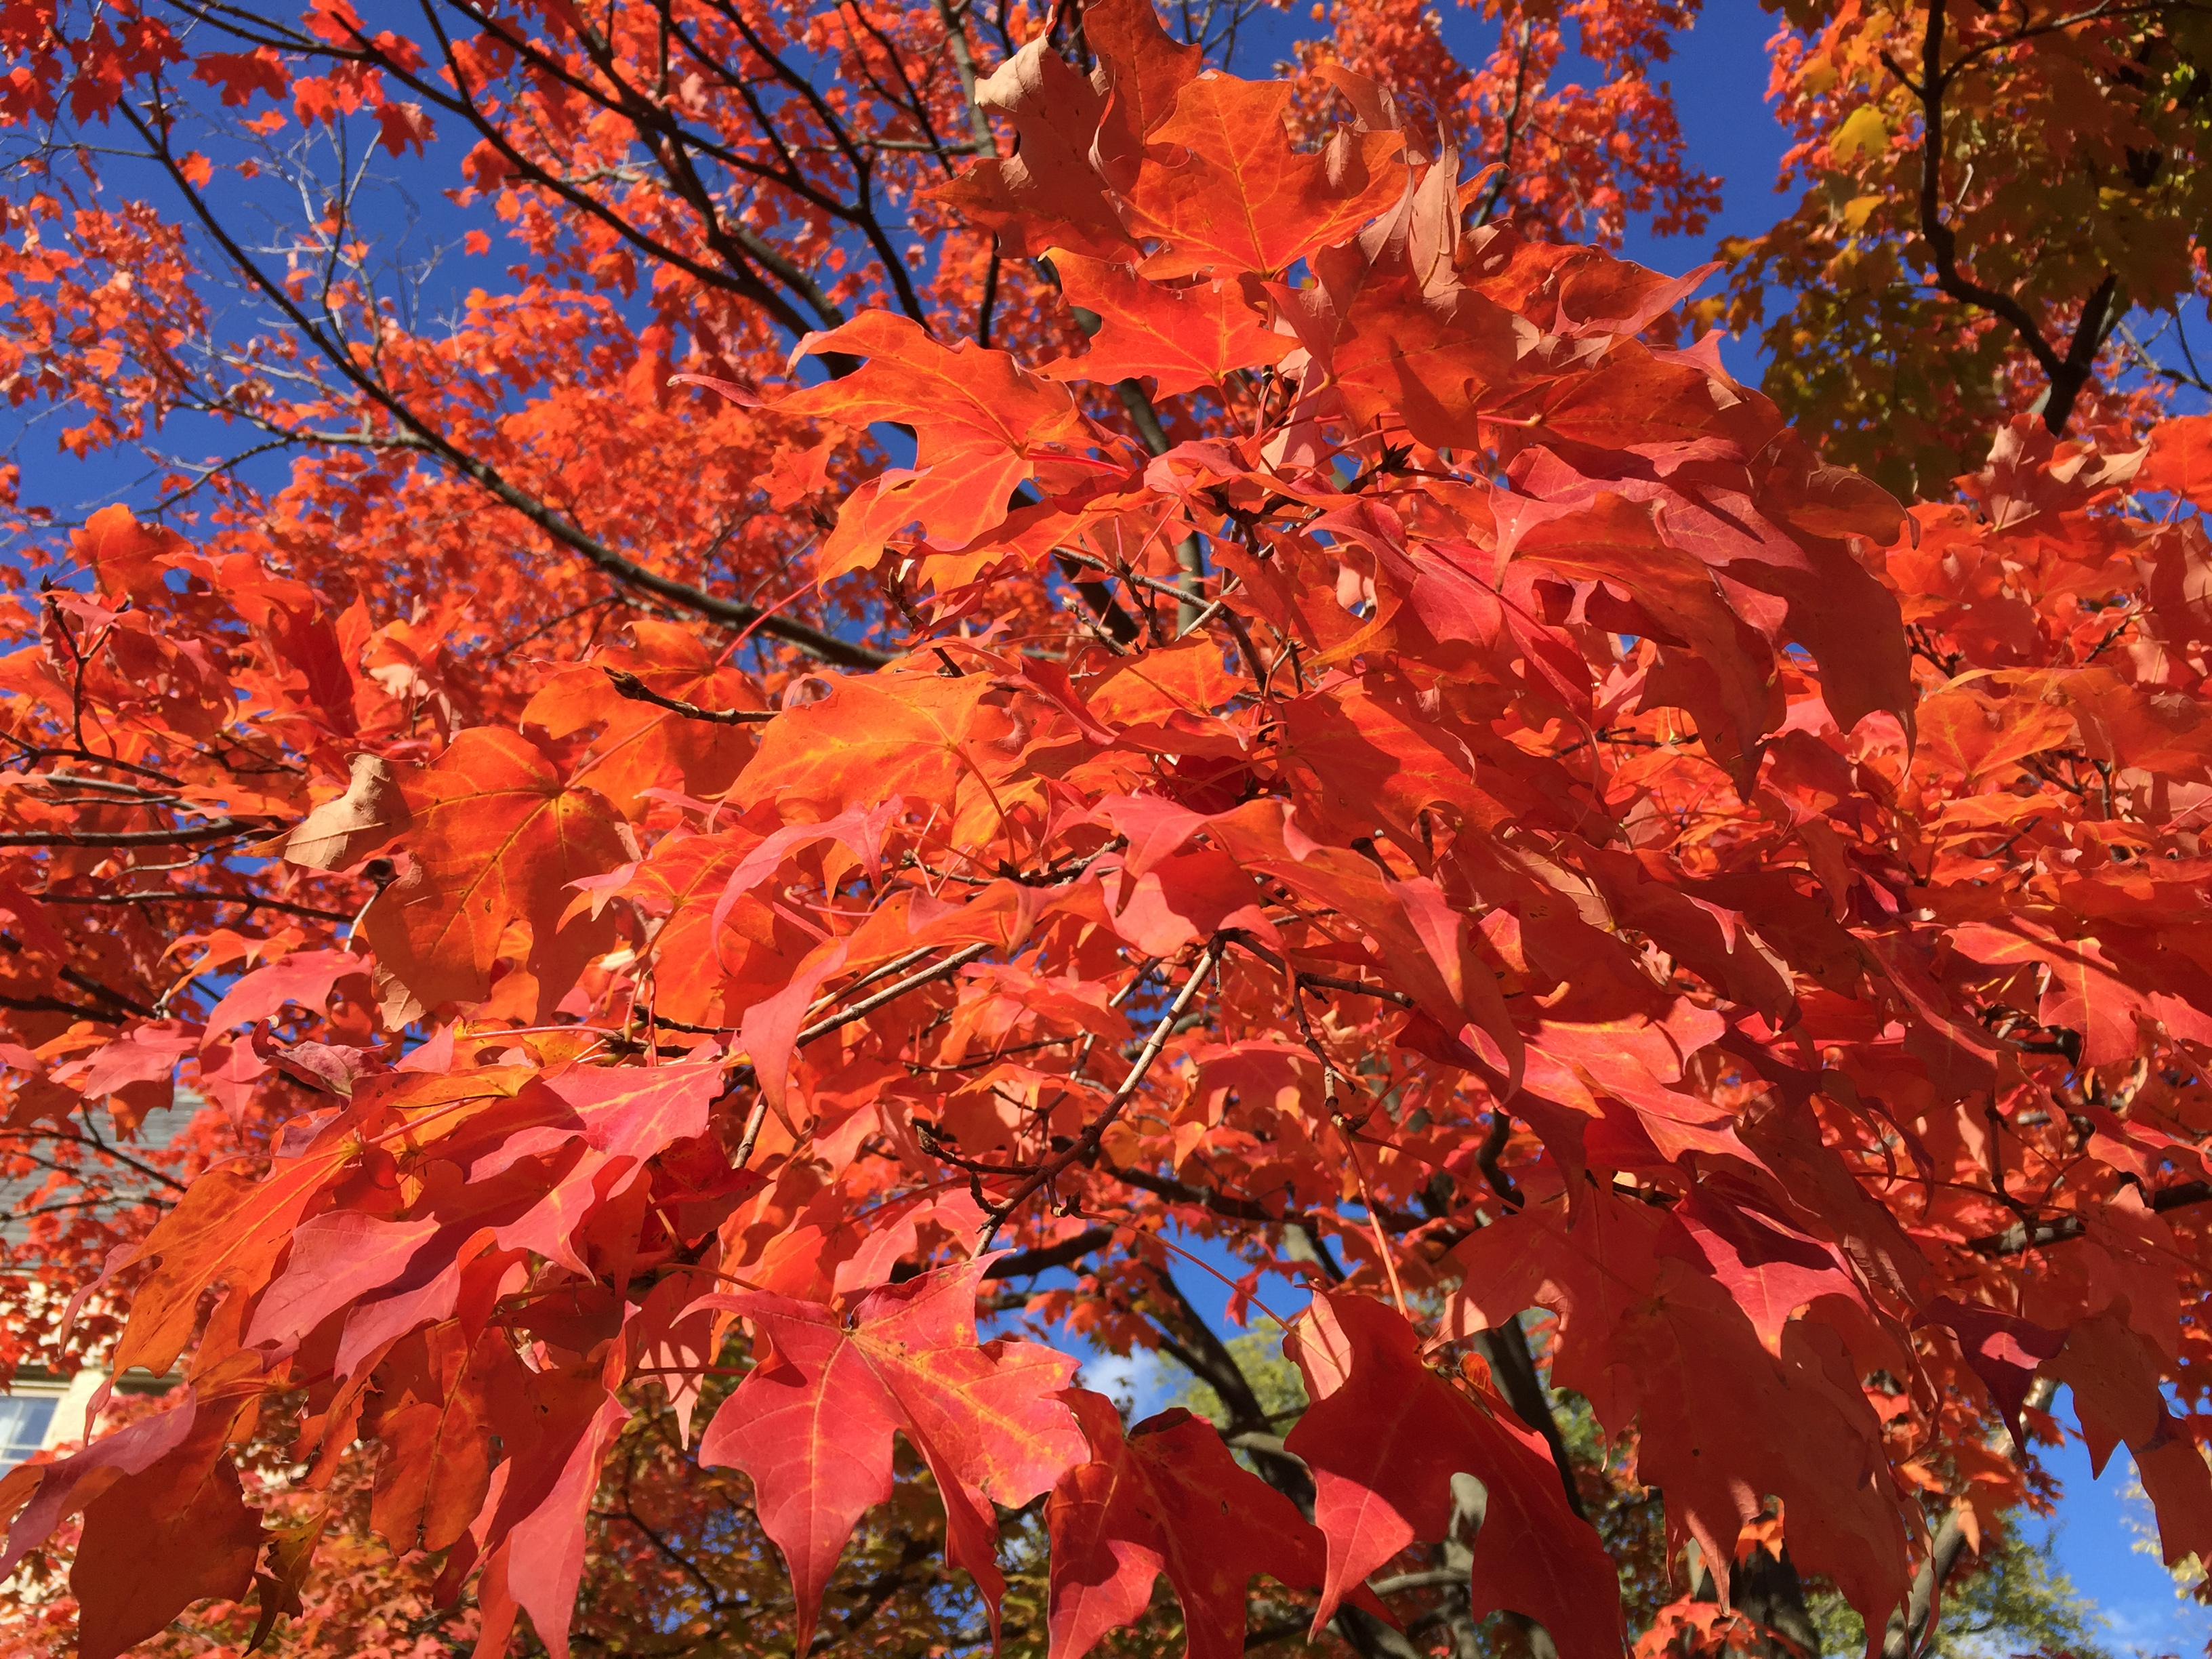 Autumn/Fall Colors 2015 – Love is the most excellent way